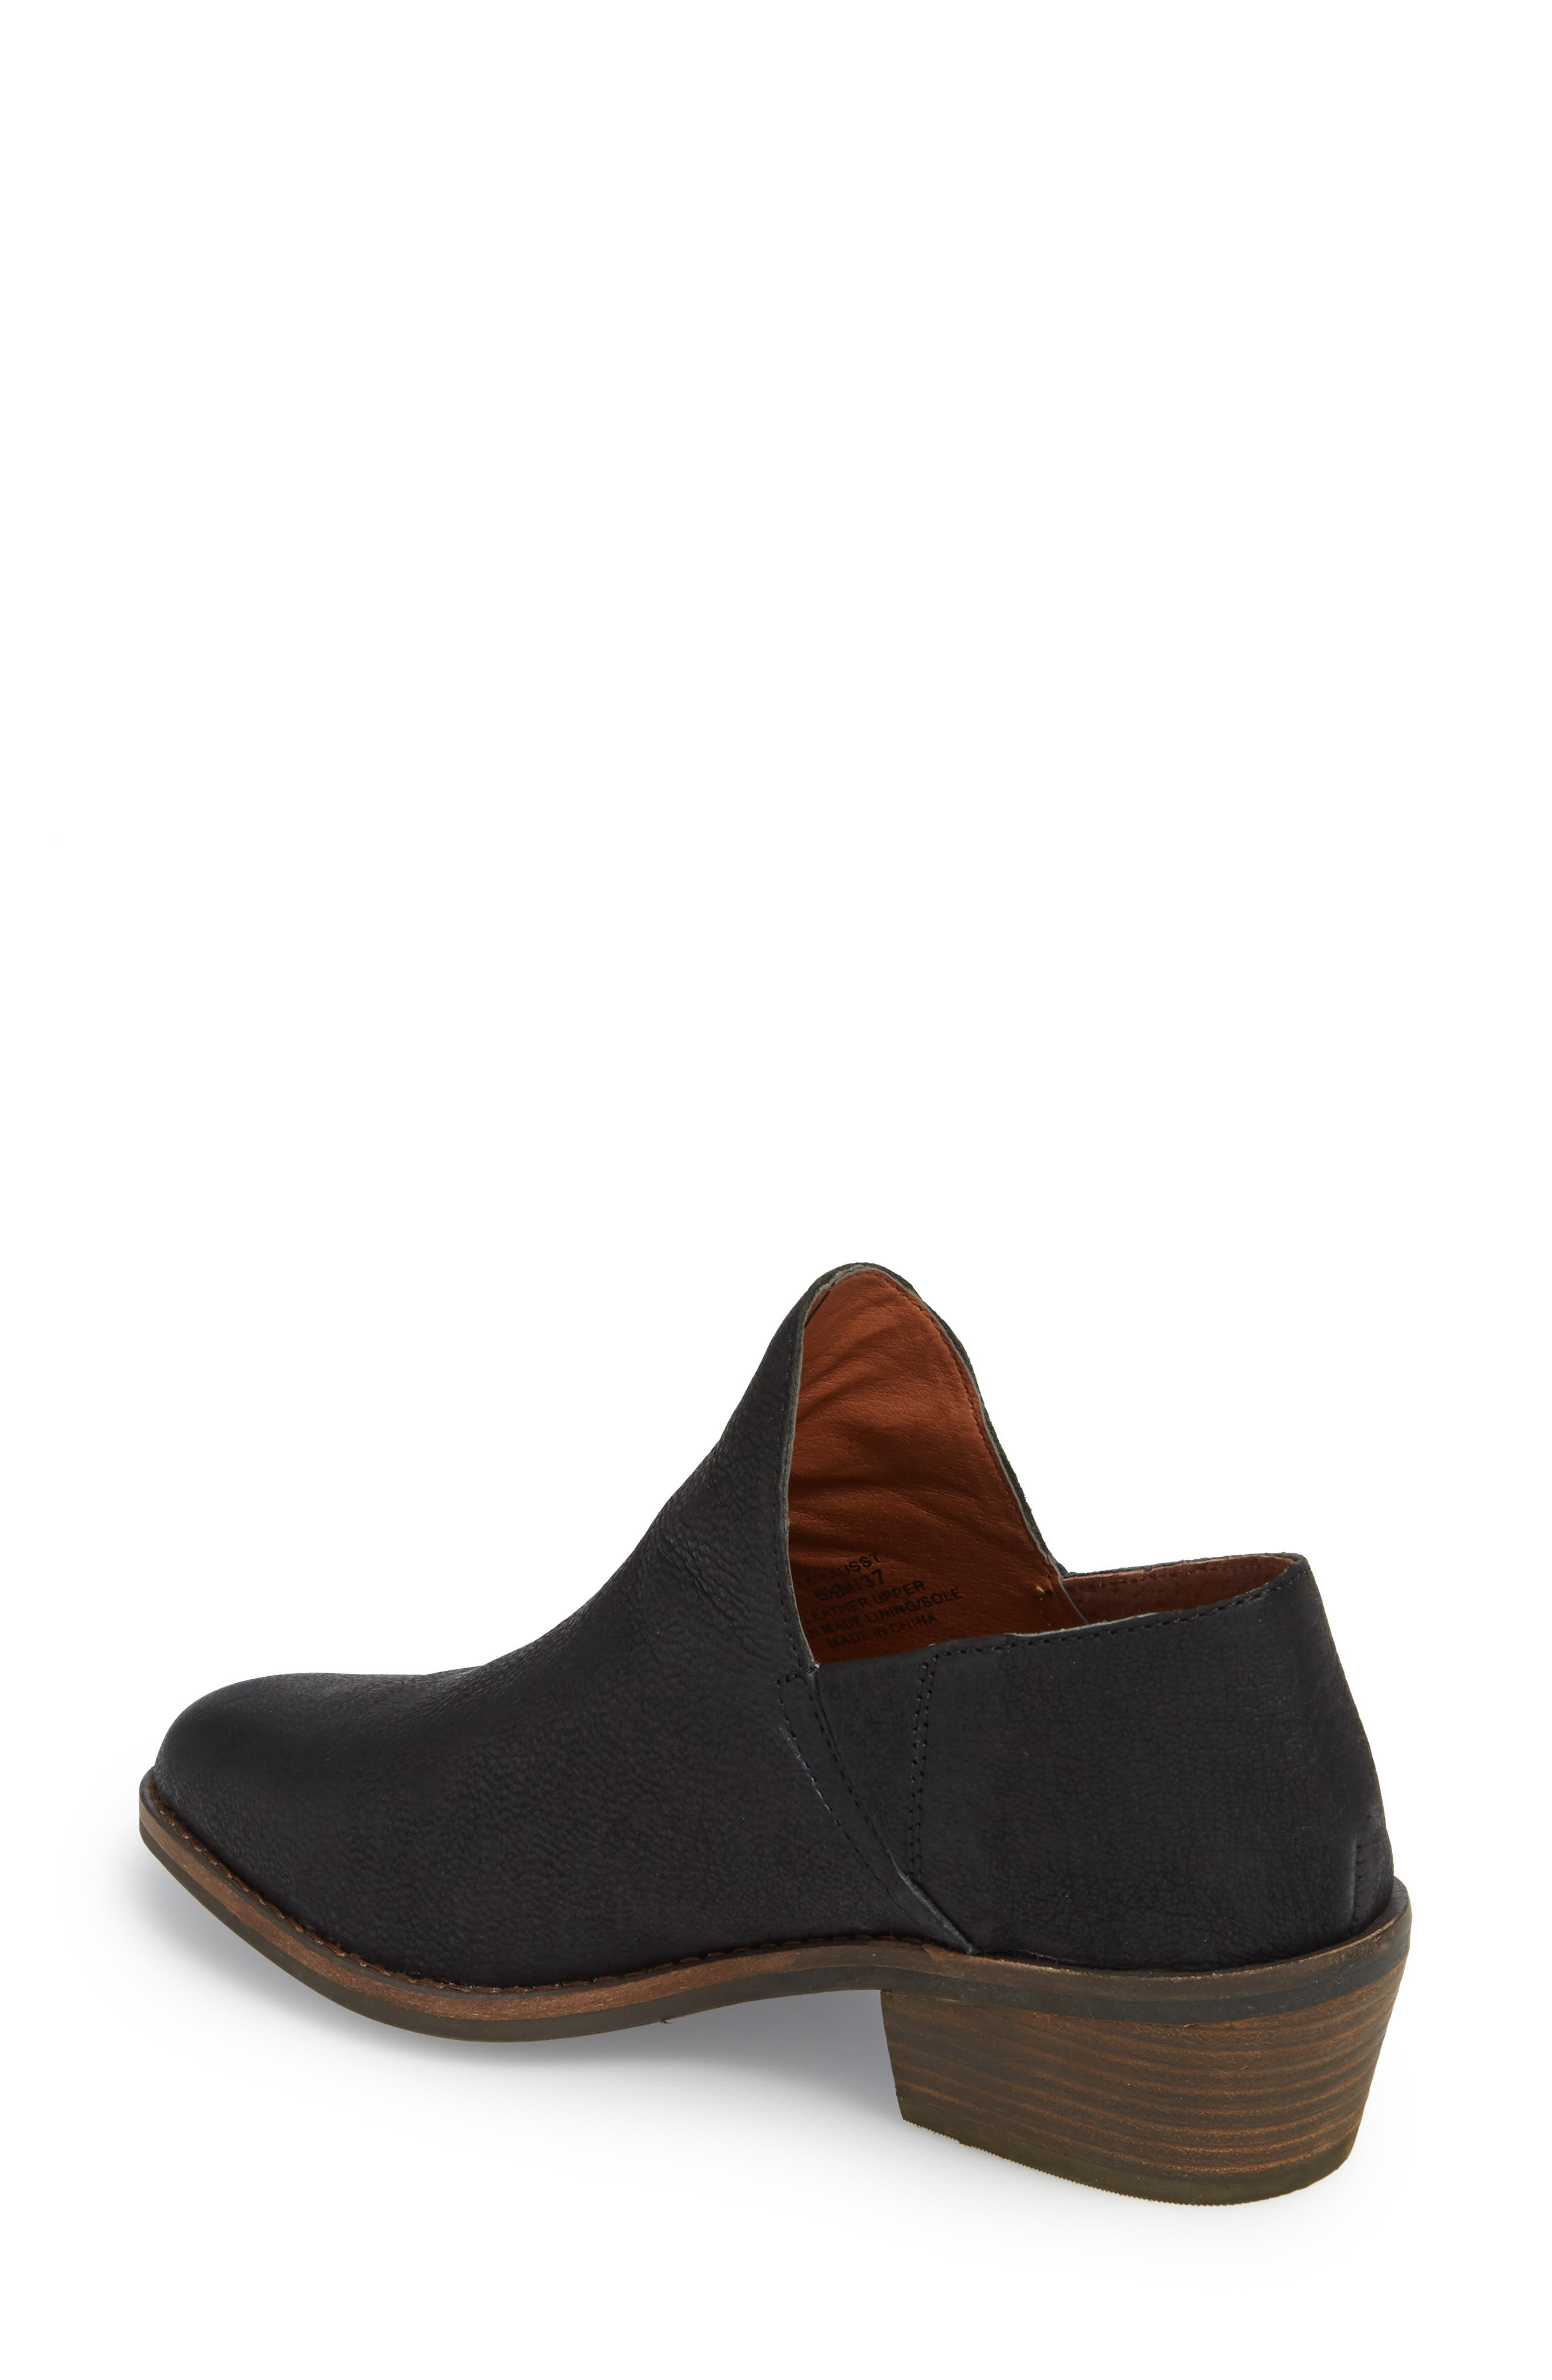 LUCKY BRAND,                             Fausst Bootie,                             Alternate thumbnail 2, color,                             001